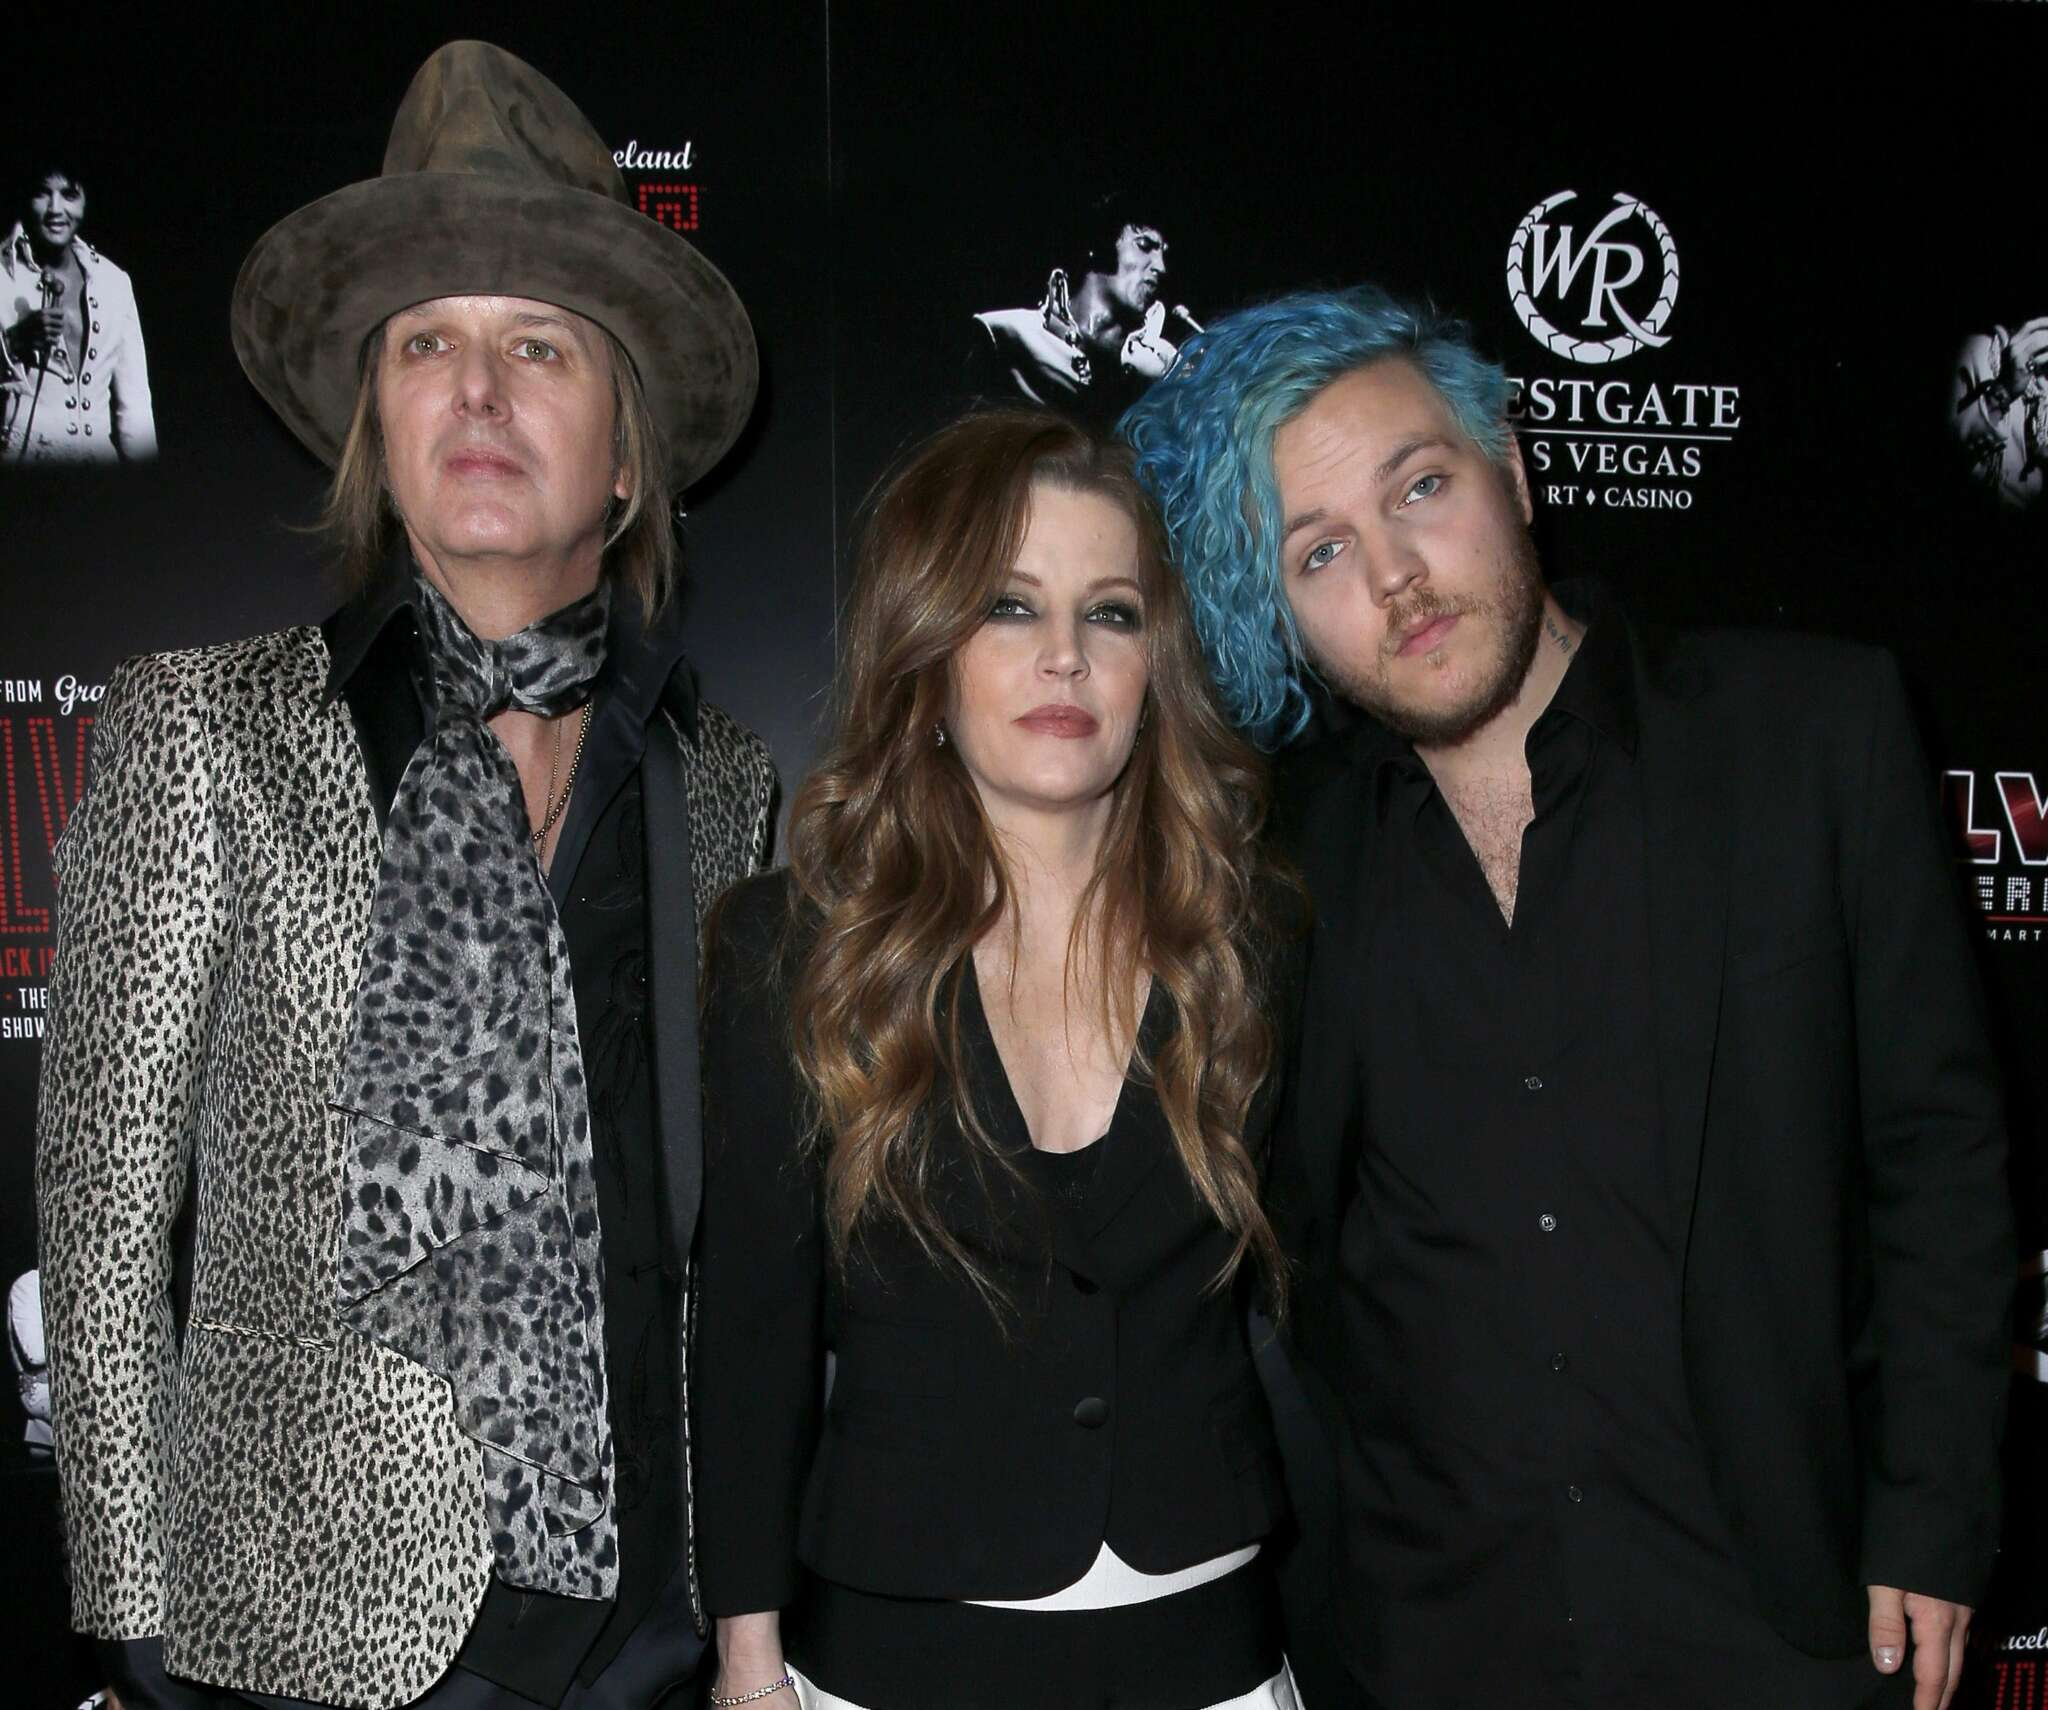 lisa-marie-presley-and-former-husband-danny-keough-living-together-again-following-the-death-of-their-son-benjamin